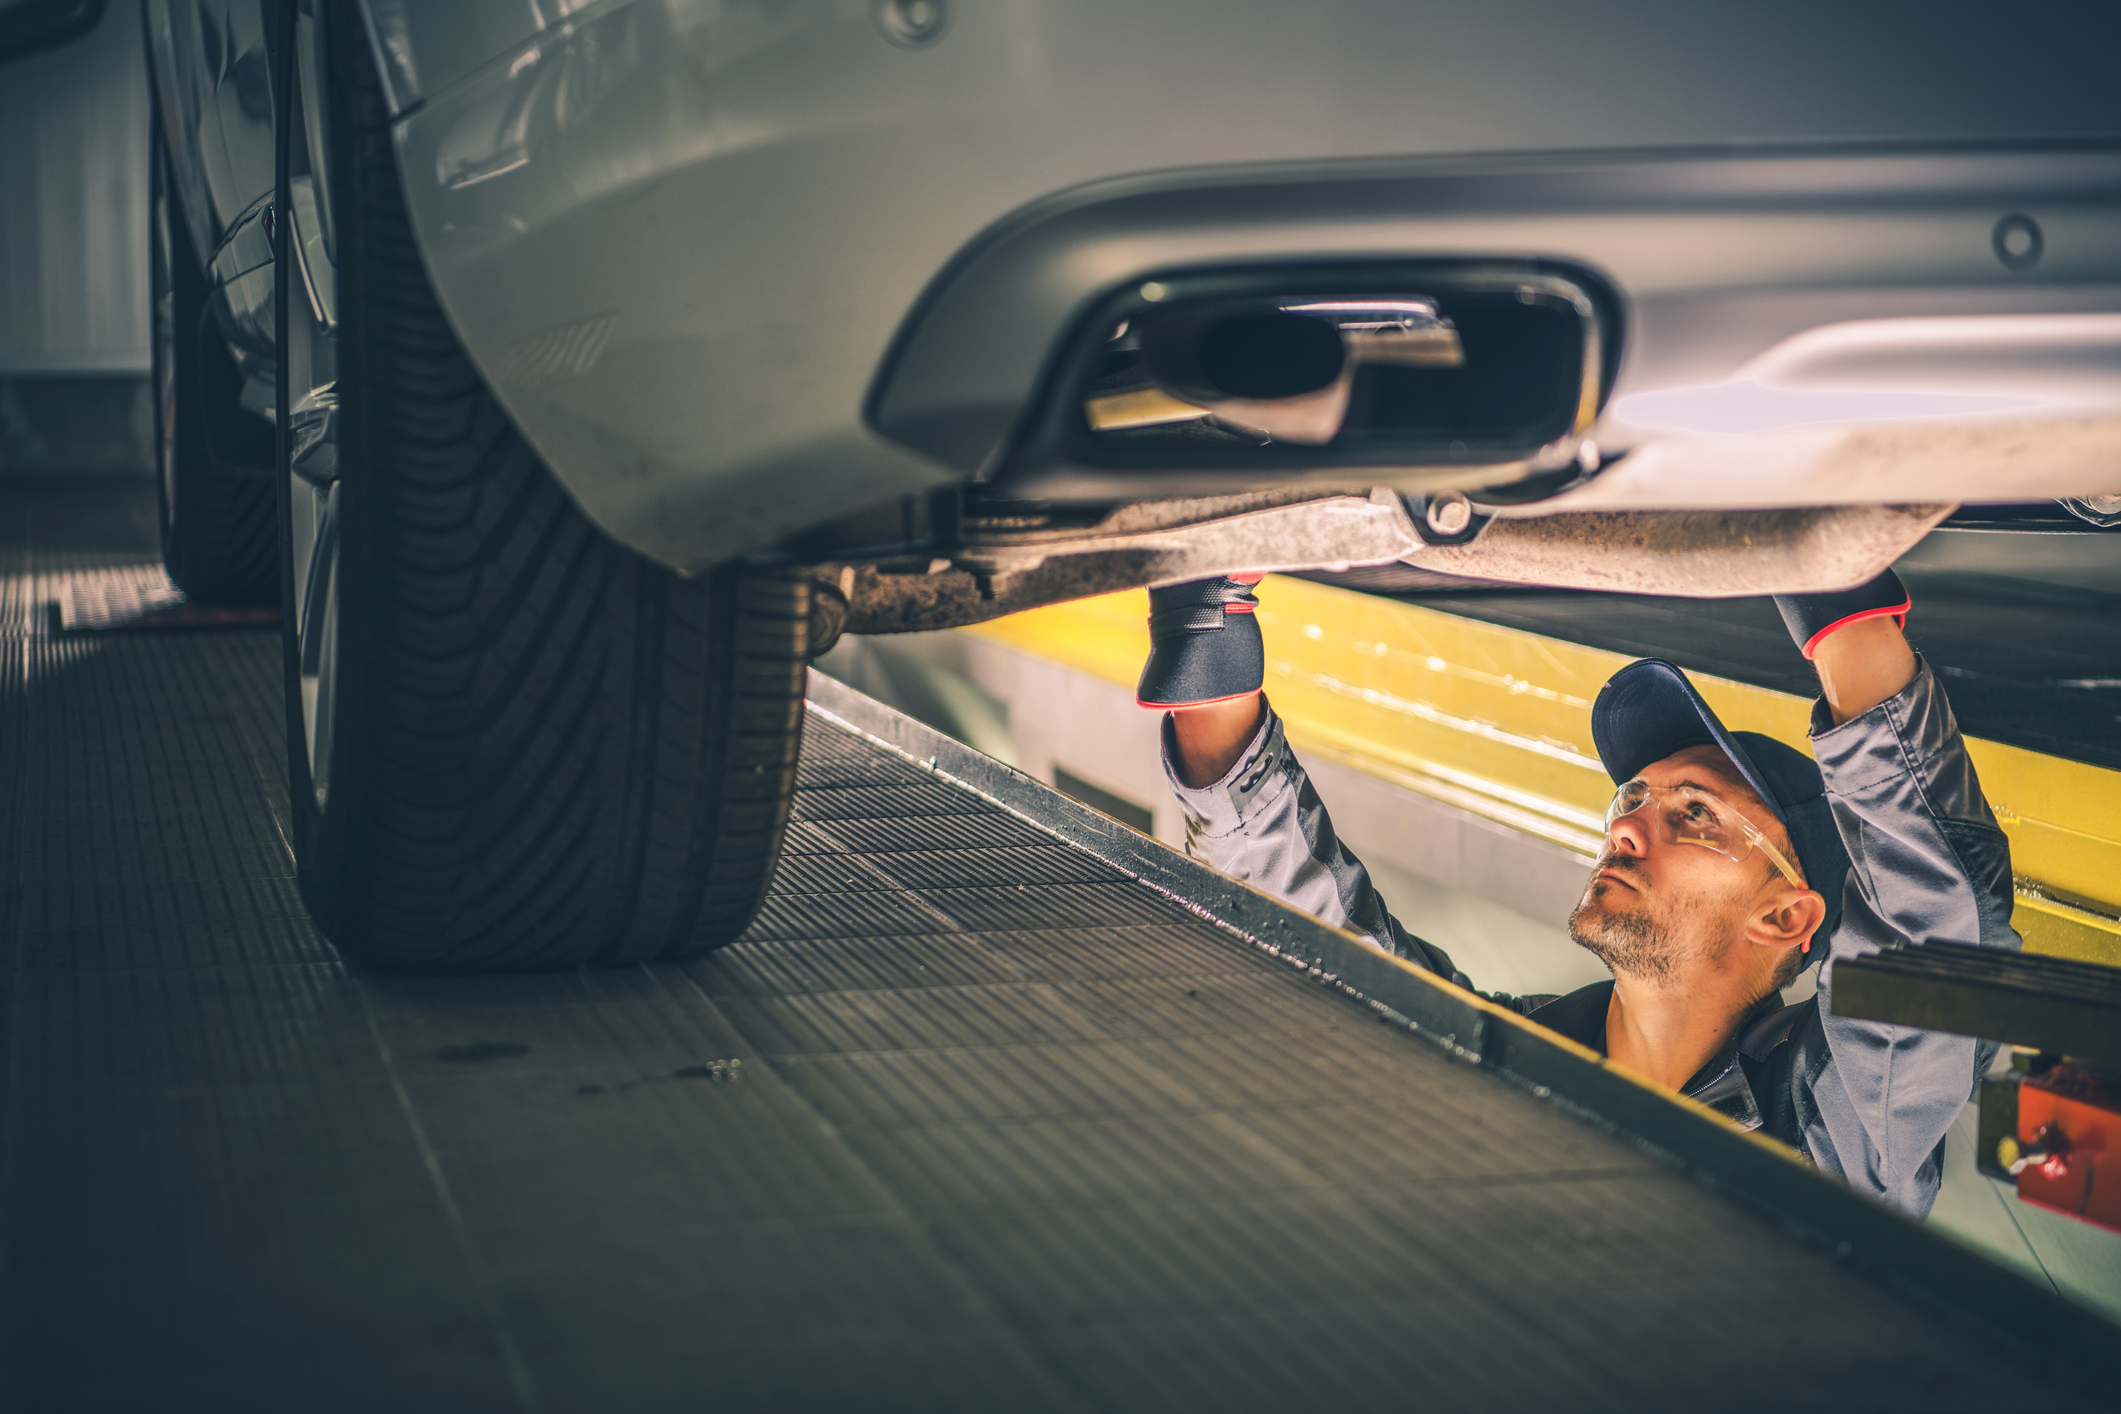 man inspecting standing and inspecting the undercarriage of car in a service dock